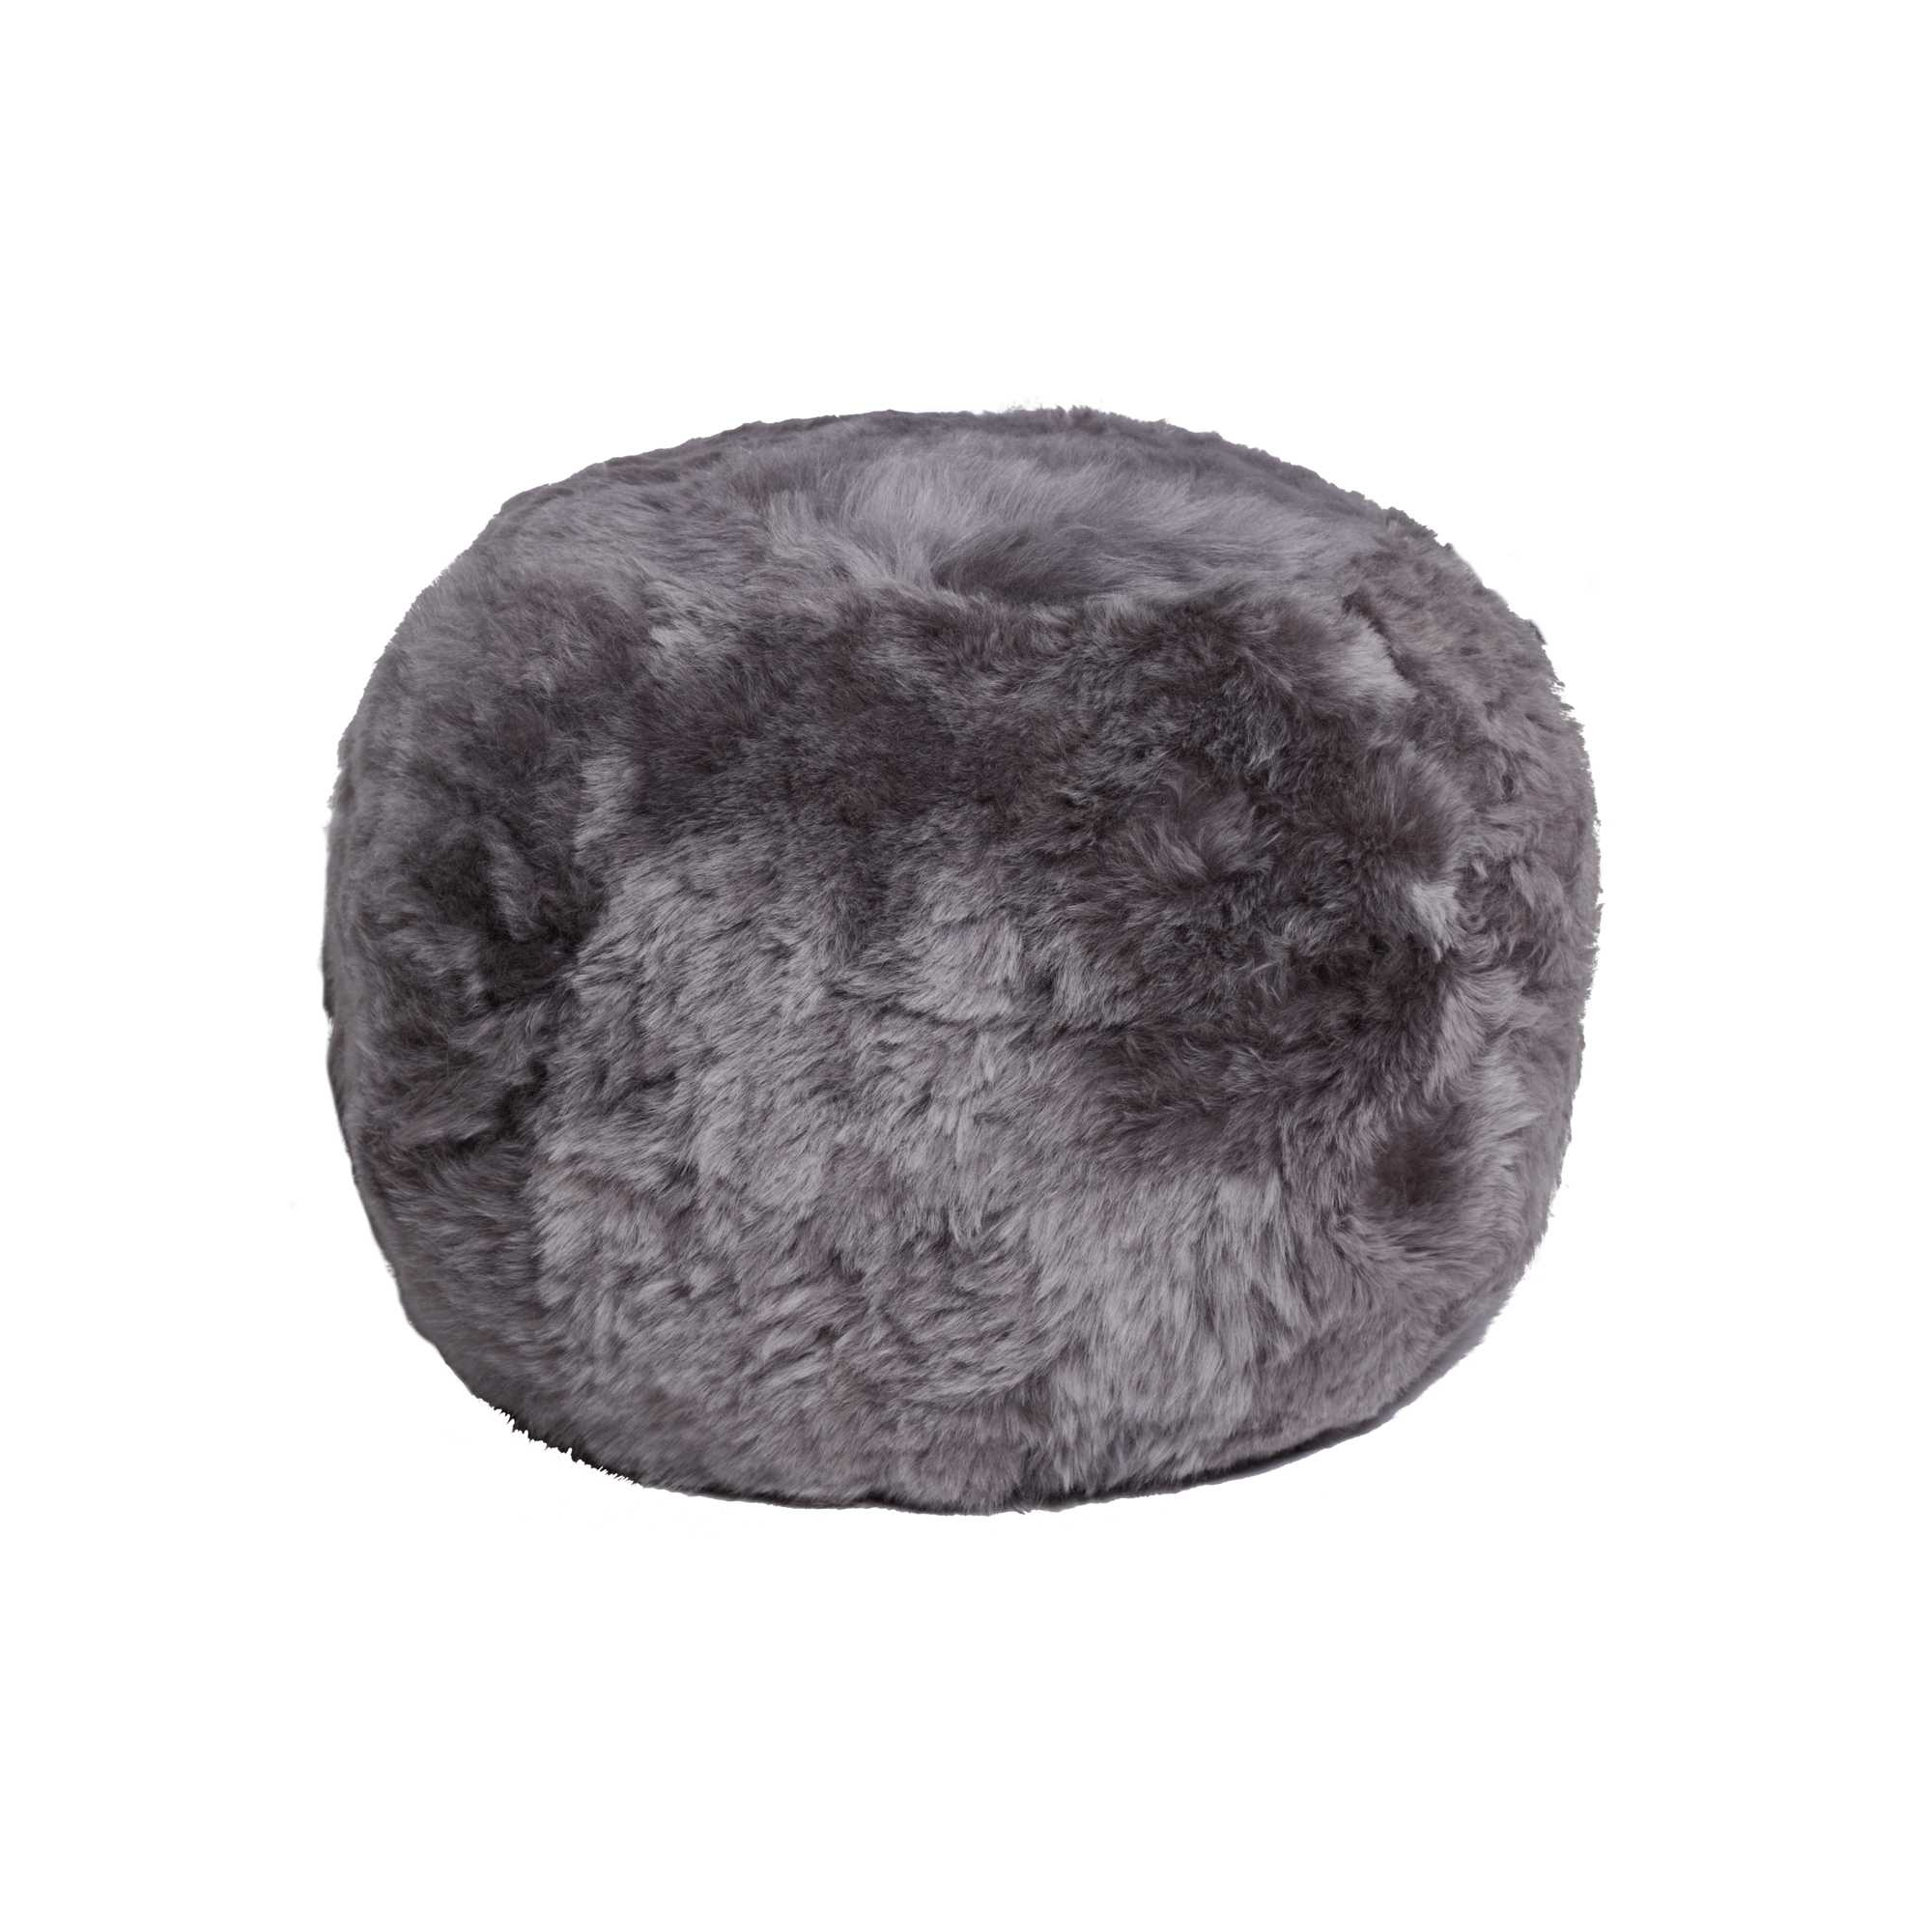 "14"" x 14"" x 11"" Brisa Short-Hair Sheepskin - Floor Cushion"